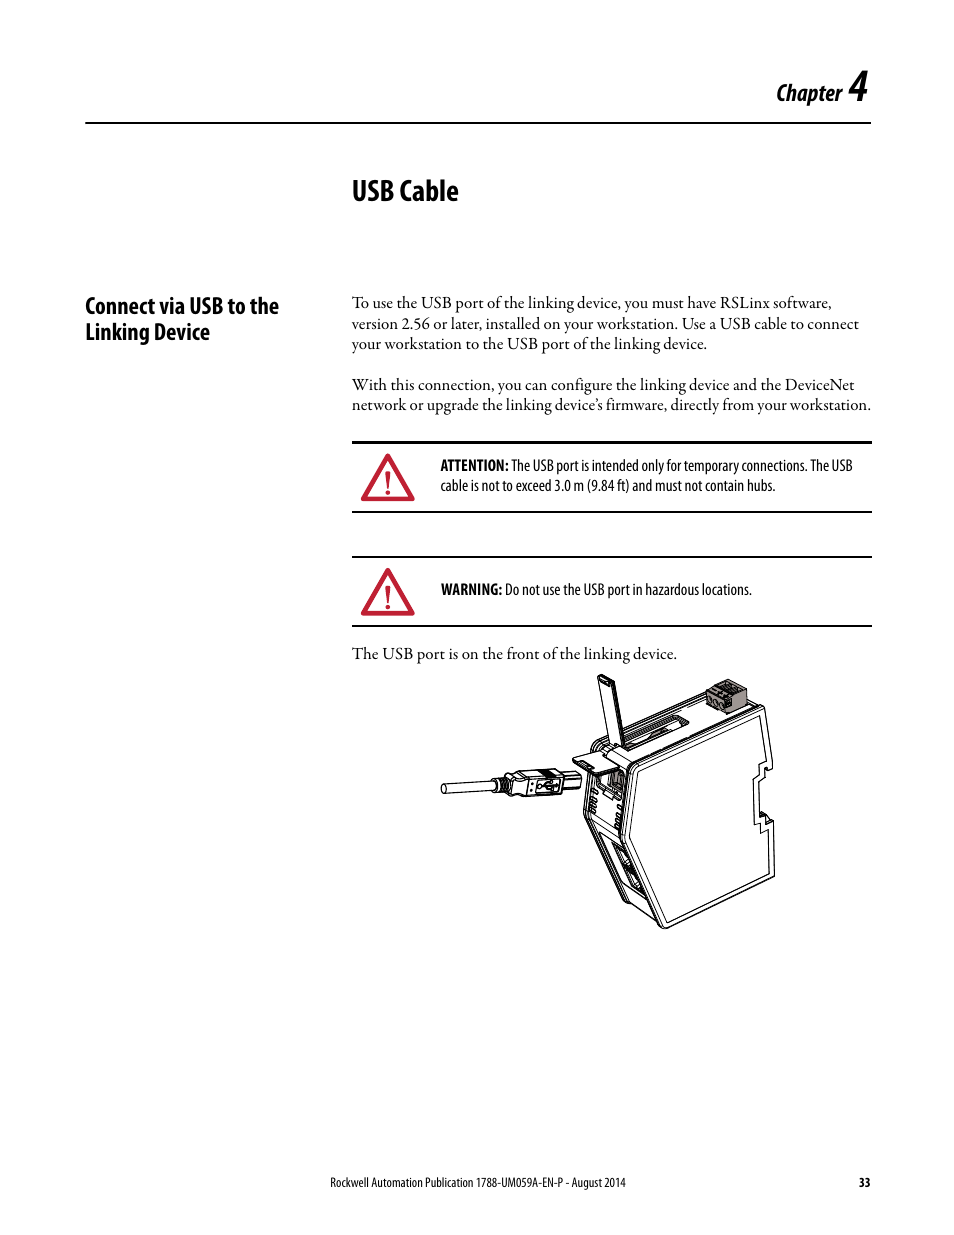 Devicenet Cat5 Cable Diagram Electrical Wiring Diagrams 4 Usb Connect Via To The Linking Device Chapter